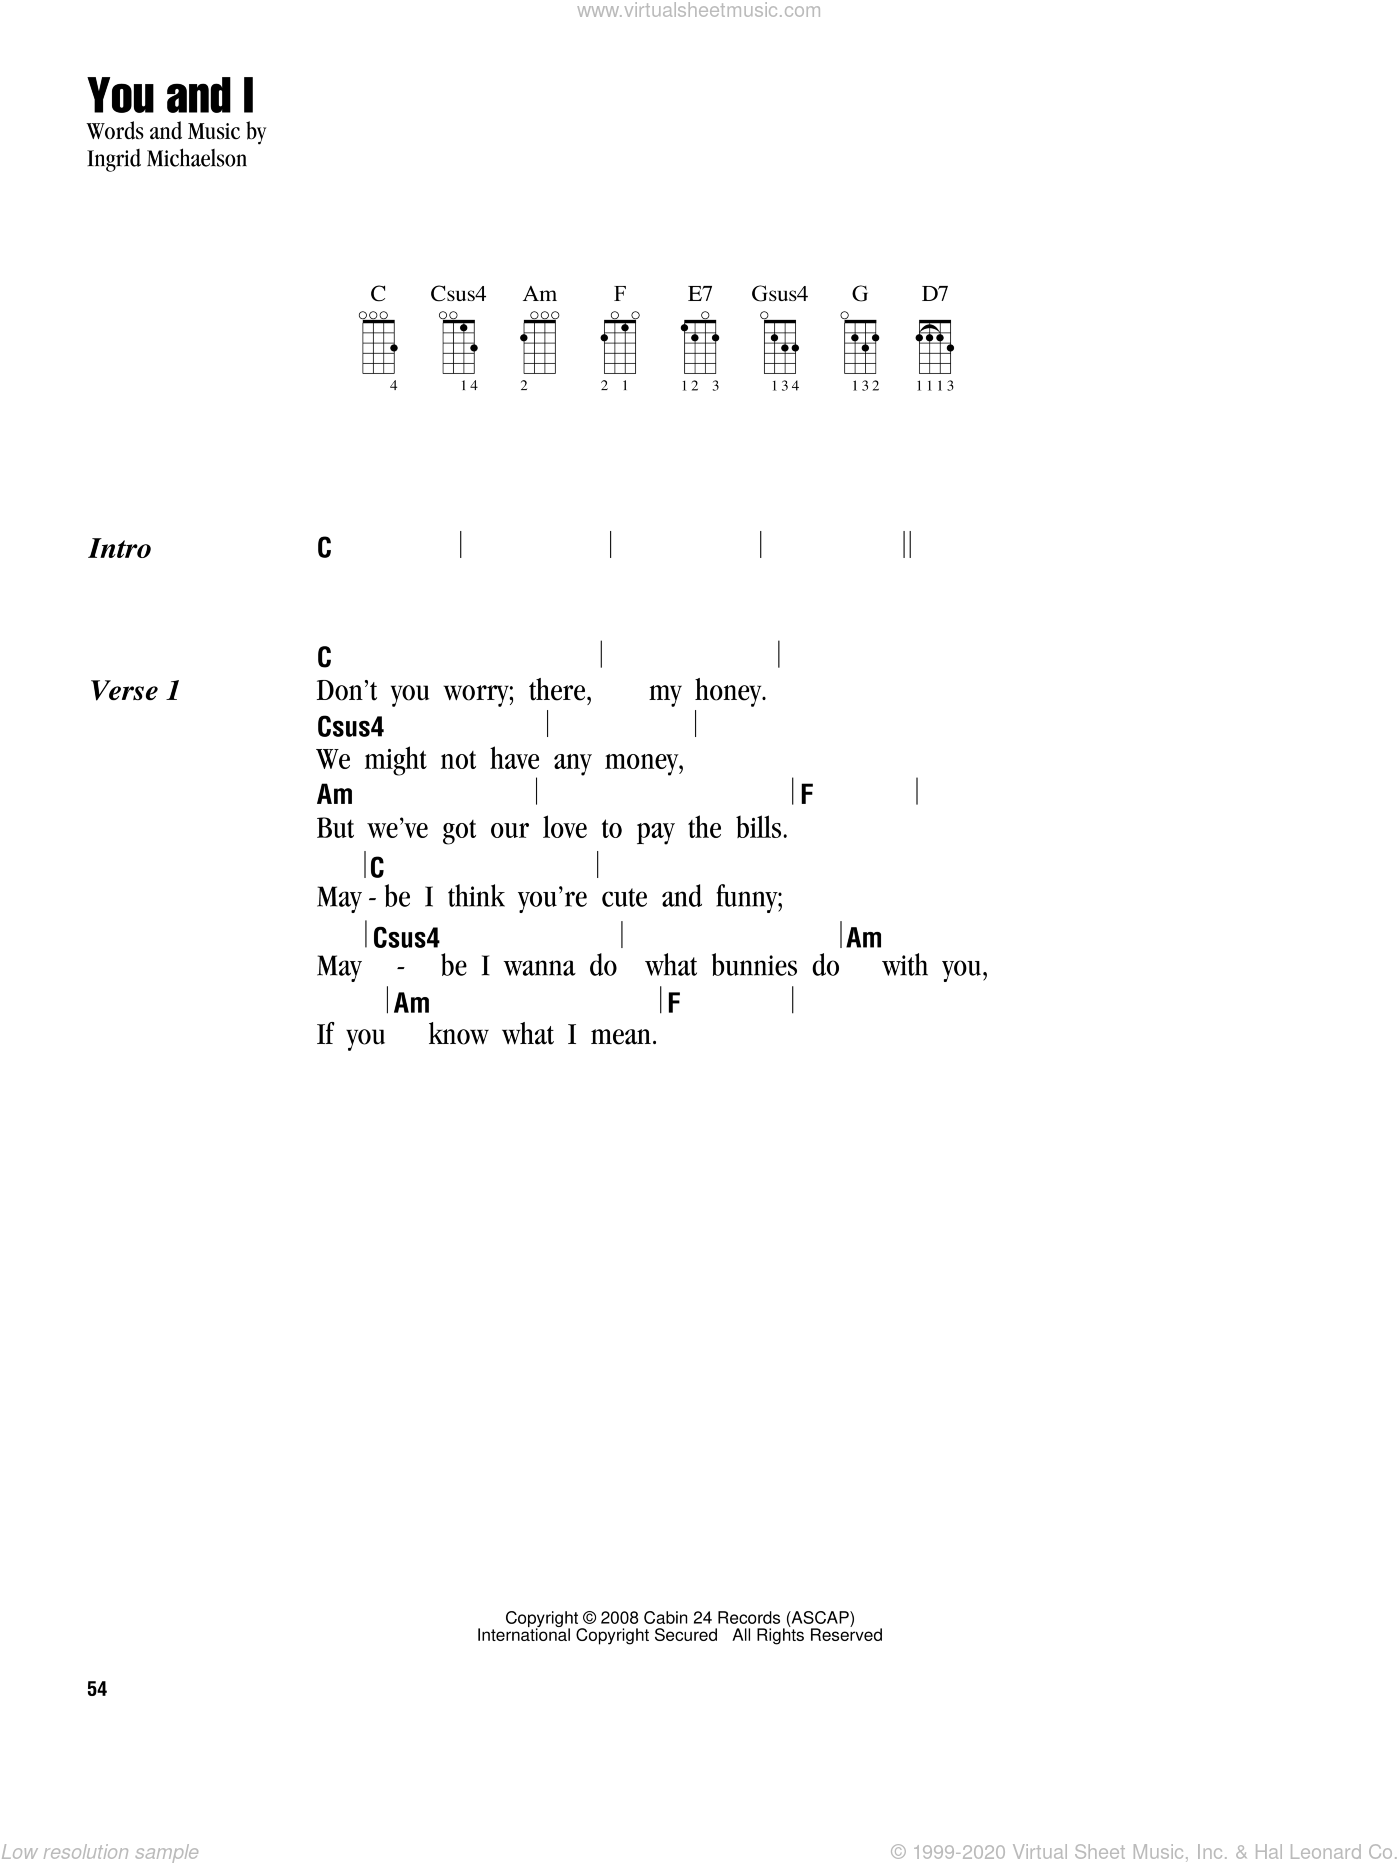 You And I sheet music for ukulele (chords) by Ingrid Michaelson, intermediate skill level